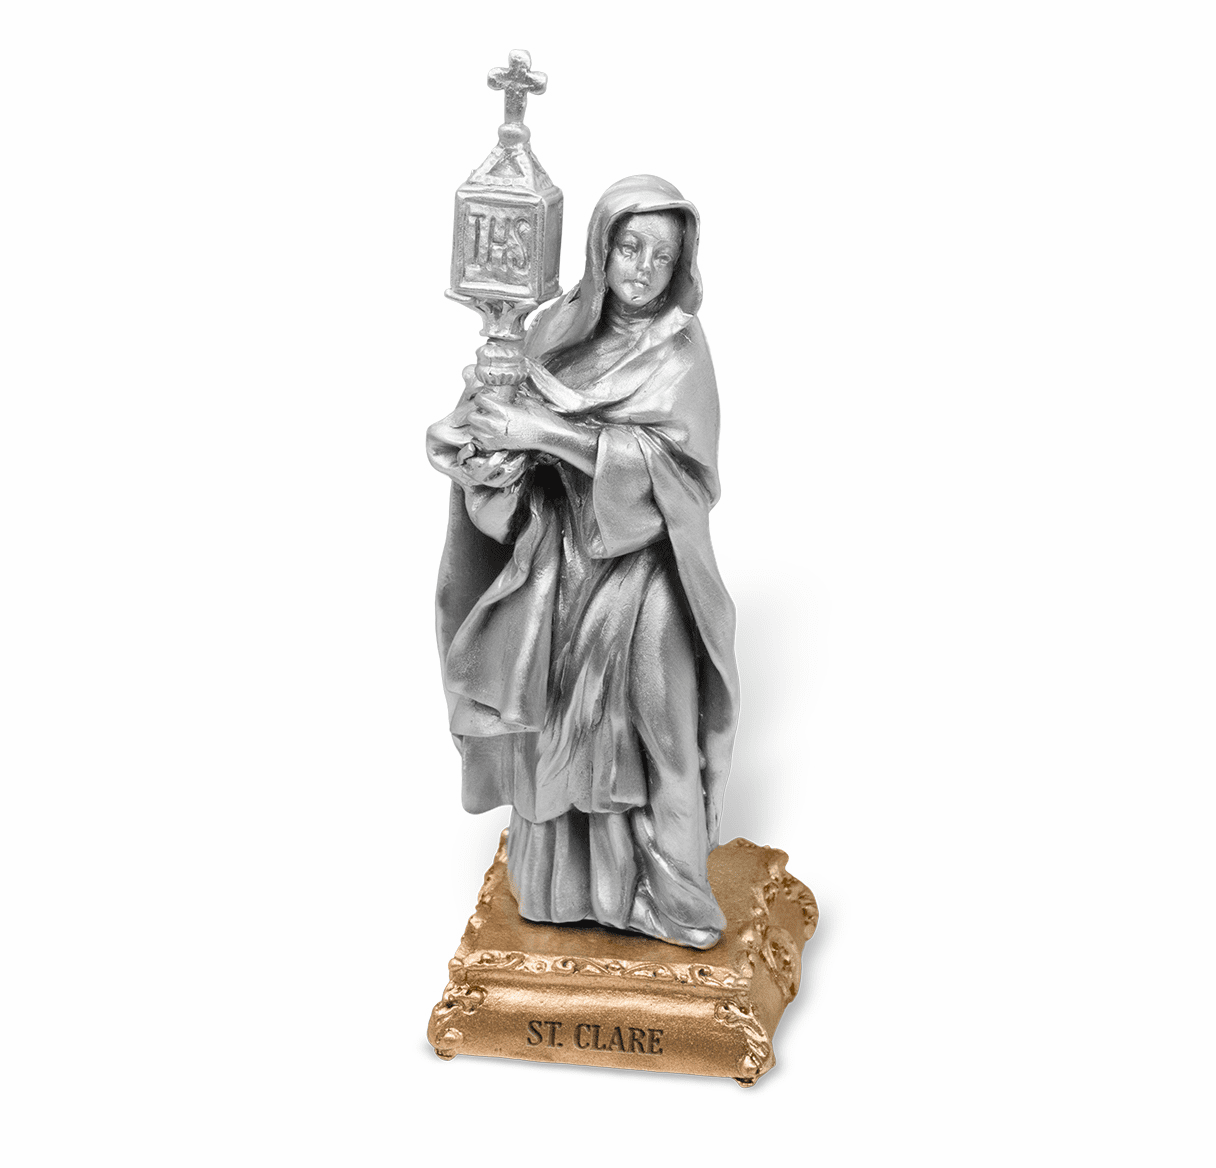 St Clare Patron Saint Pewter Statue on Gold Tone Base by Hirten